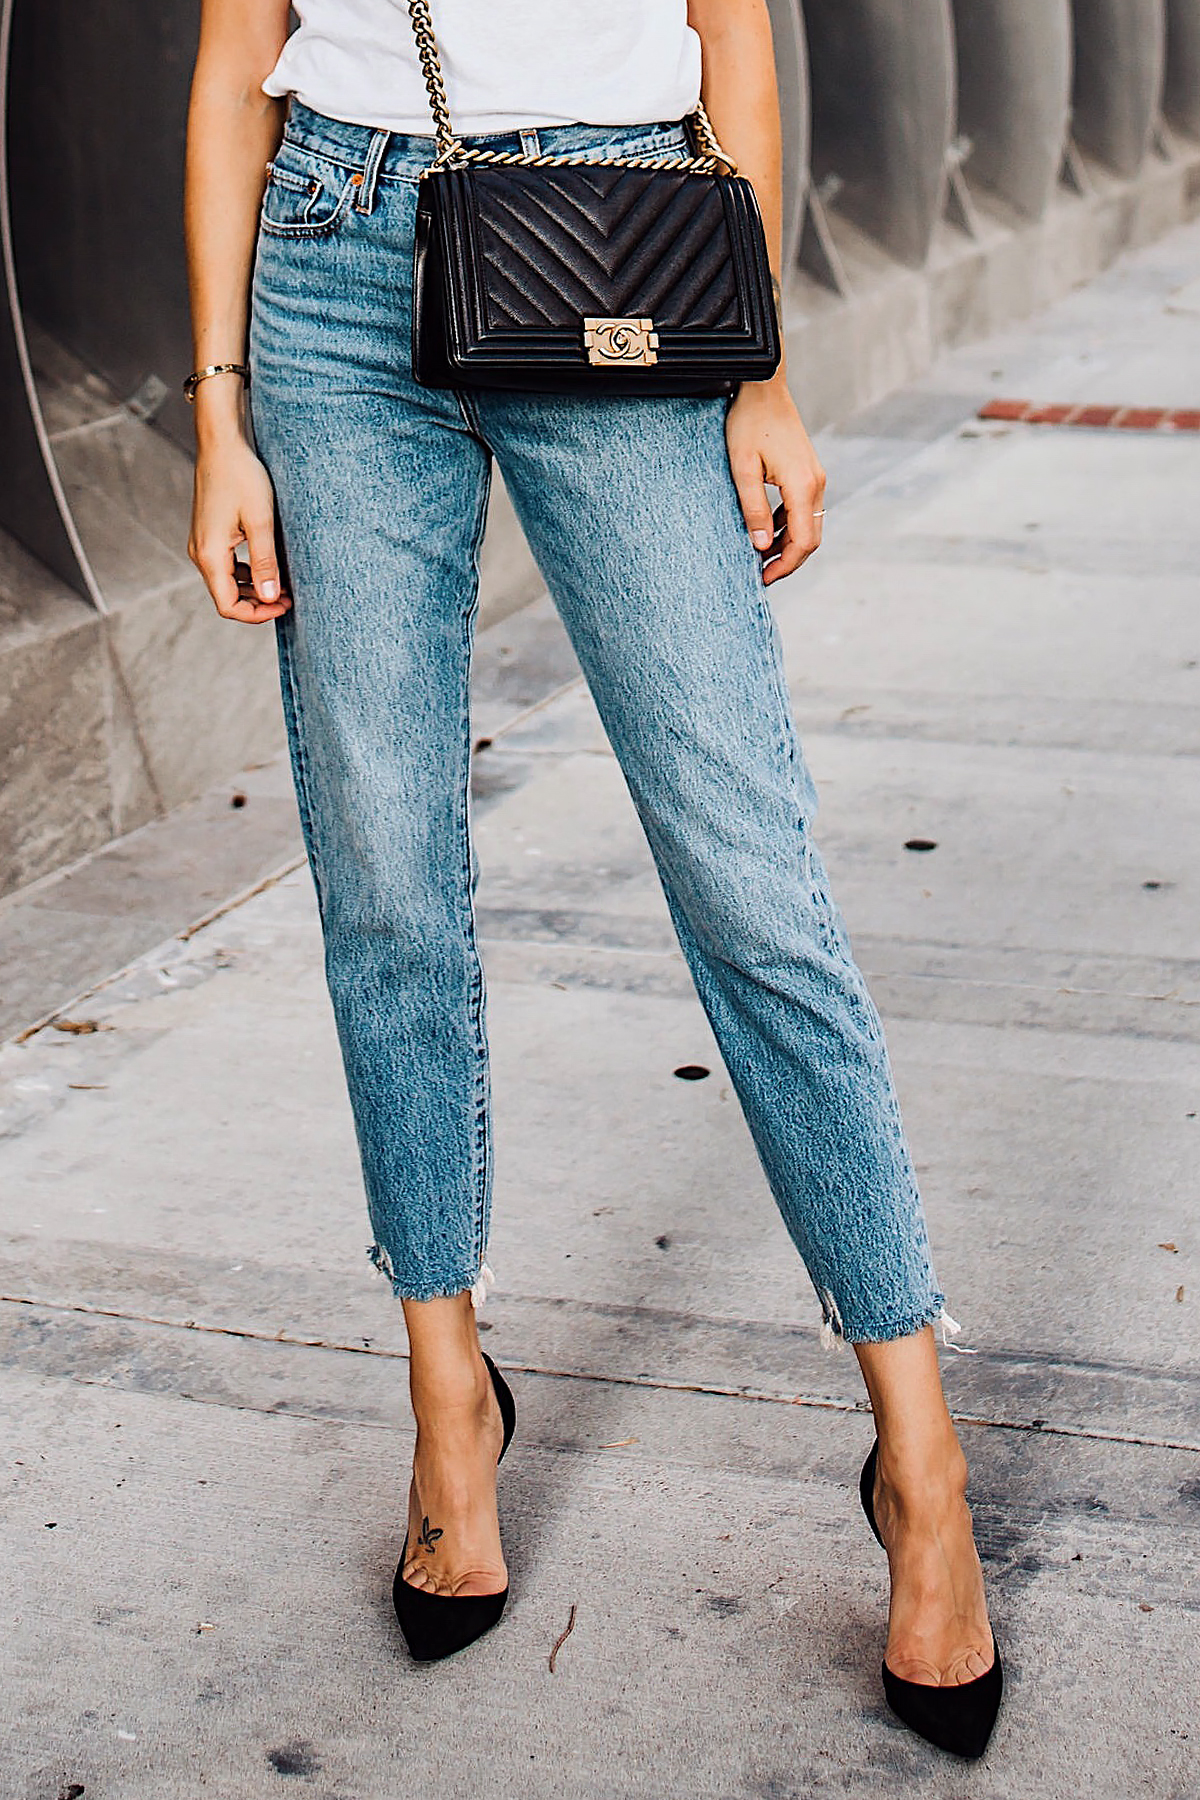 Woman Wearing Fashion Jackson Levis Wedgie Jeans Christian Louboutin Black Pumps Fashion Jackson San Diego Fashion Blogger Street Style